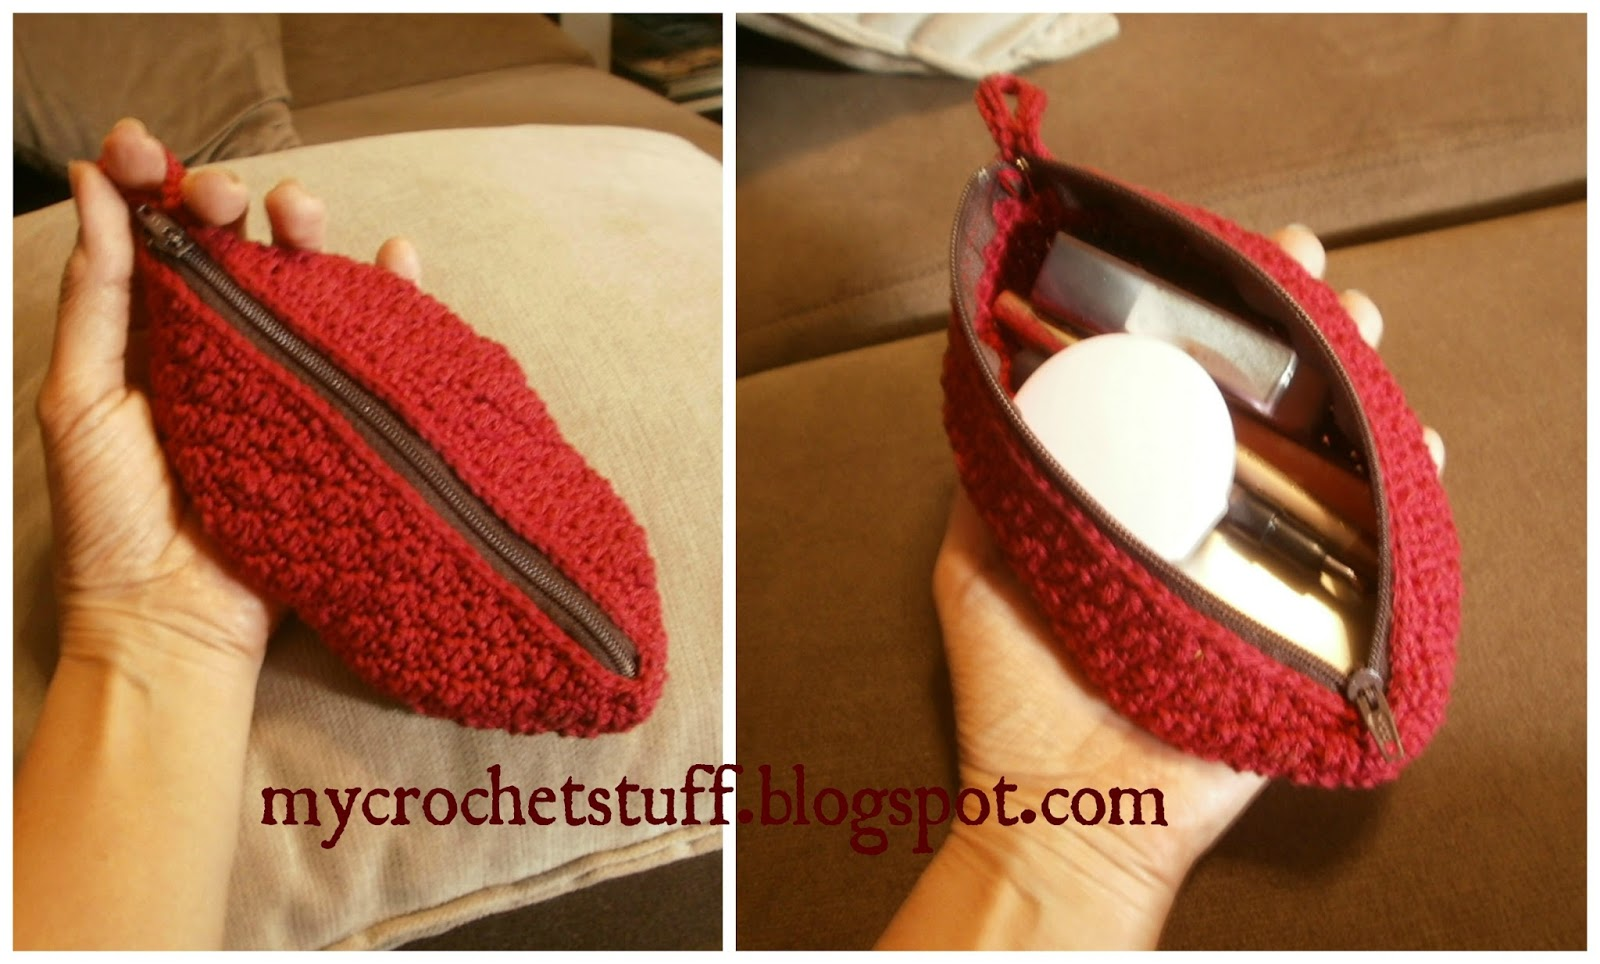 Free Crochet Patterns For Makeup Bags : Crochet and Other Stuff: Handy Oval Makeup Purse - free ...